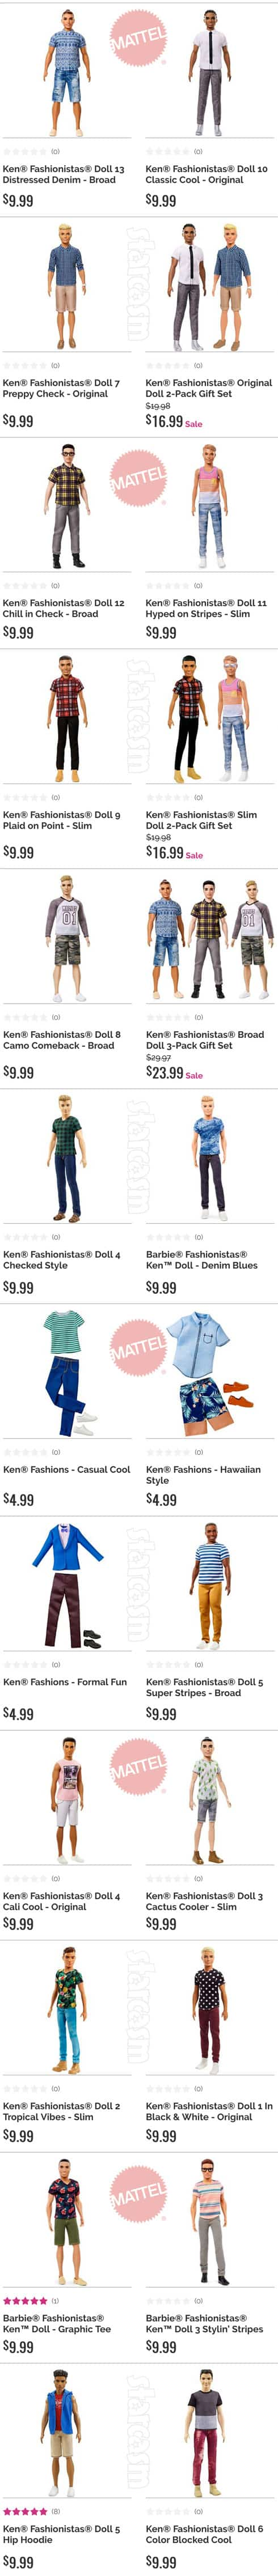 Every Fashionistas Ken doll